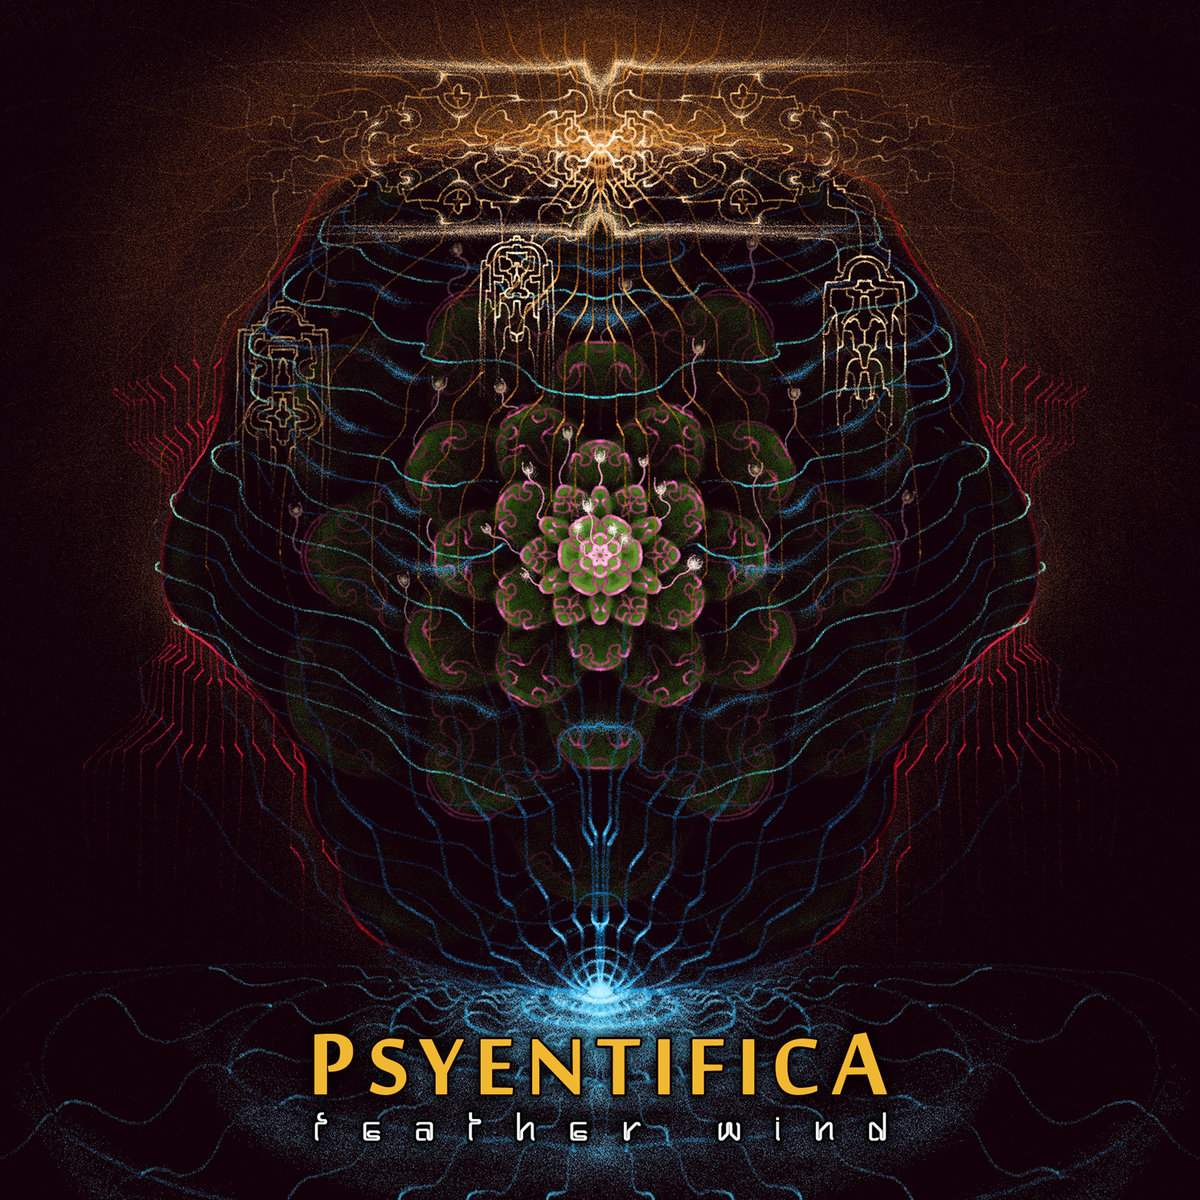 Psyentifica - Archaik Winds @ 'Feather Wind' album (canada, chillout)